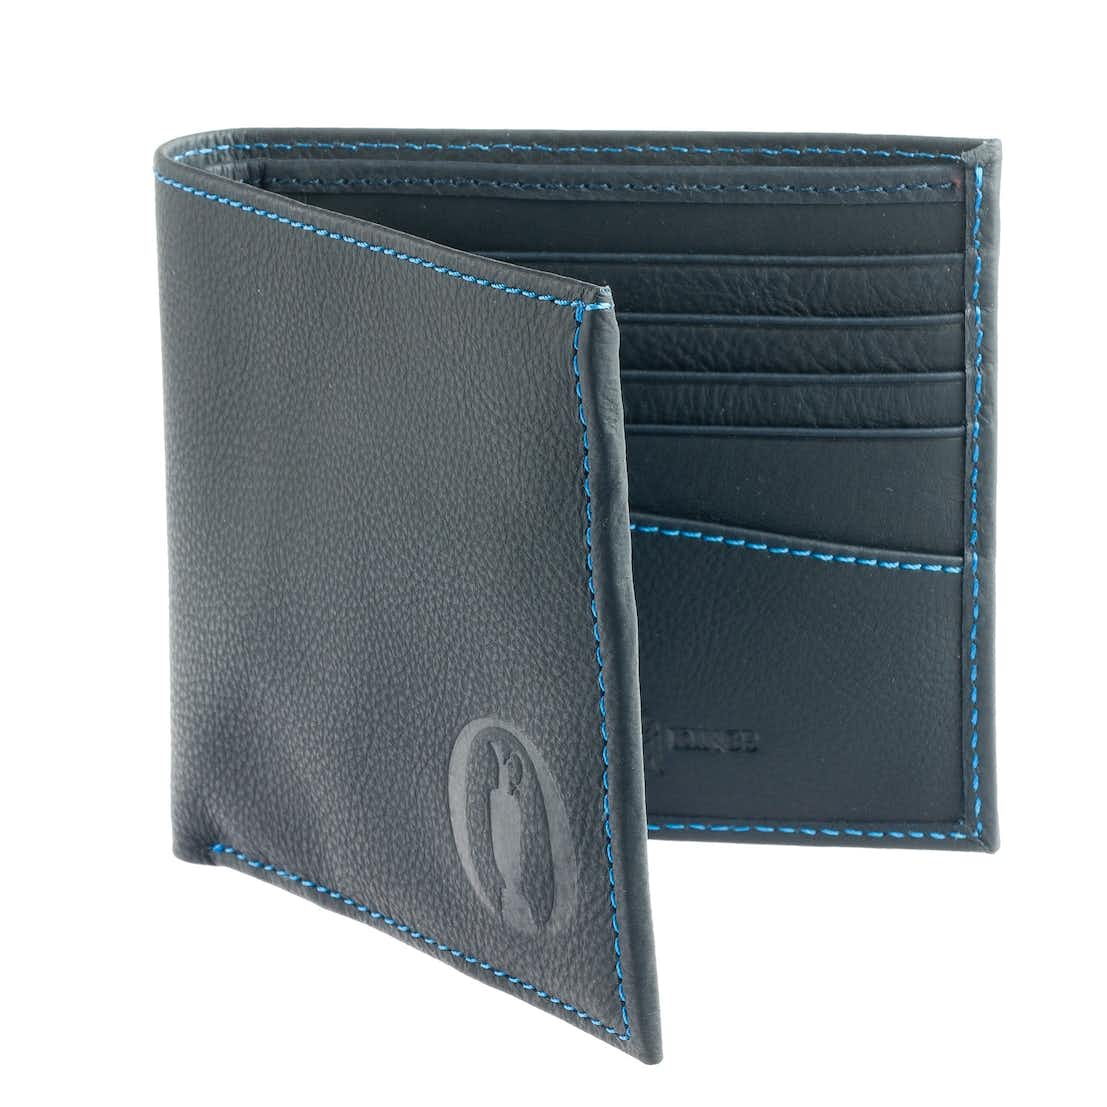 The Open Links & Kings Wallet - Blue